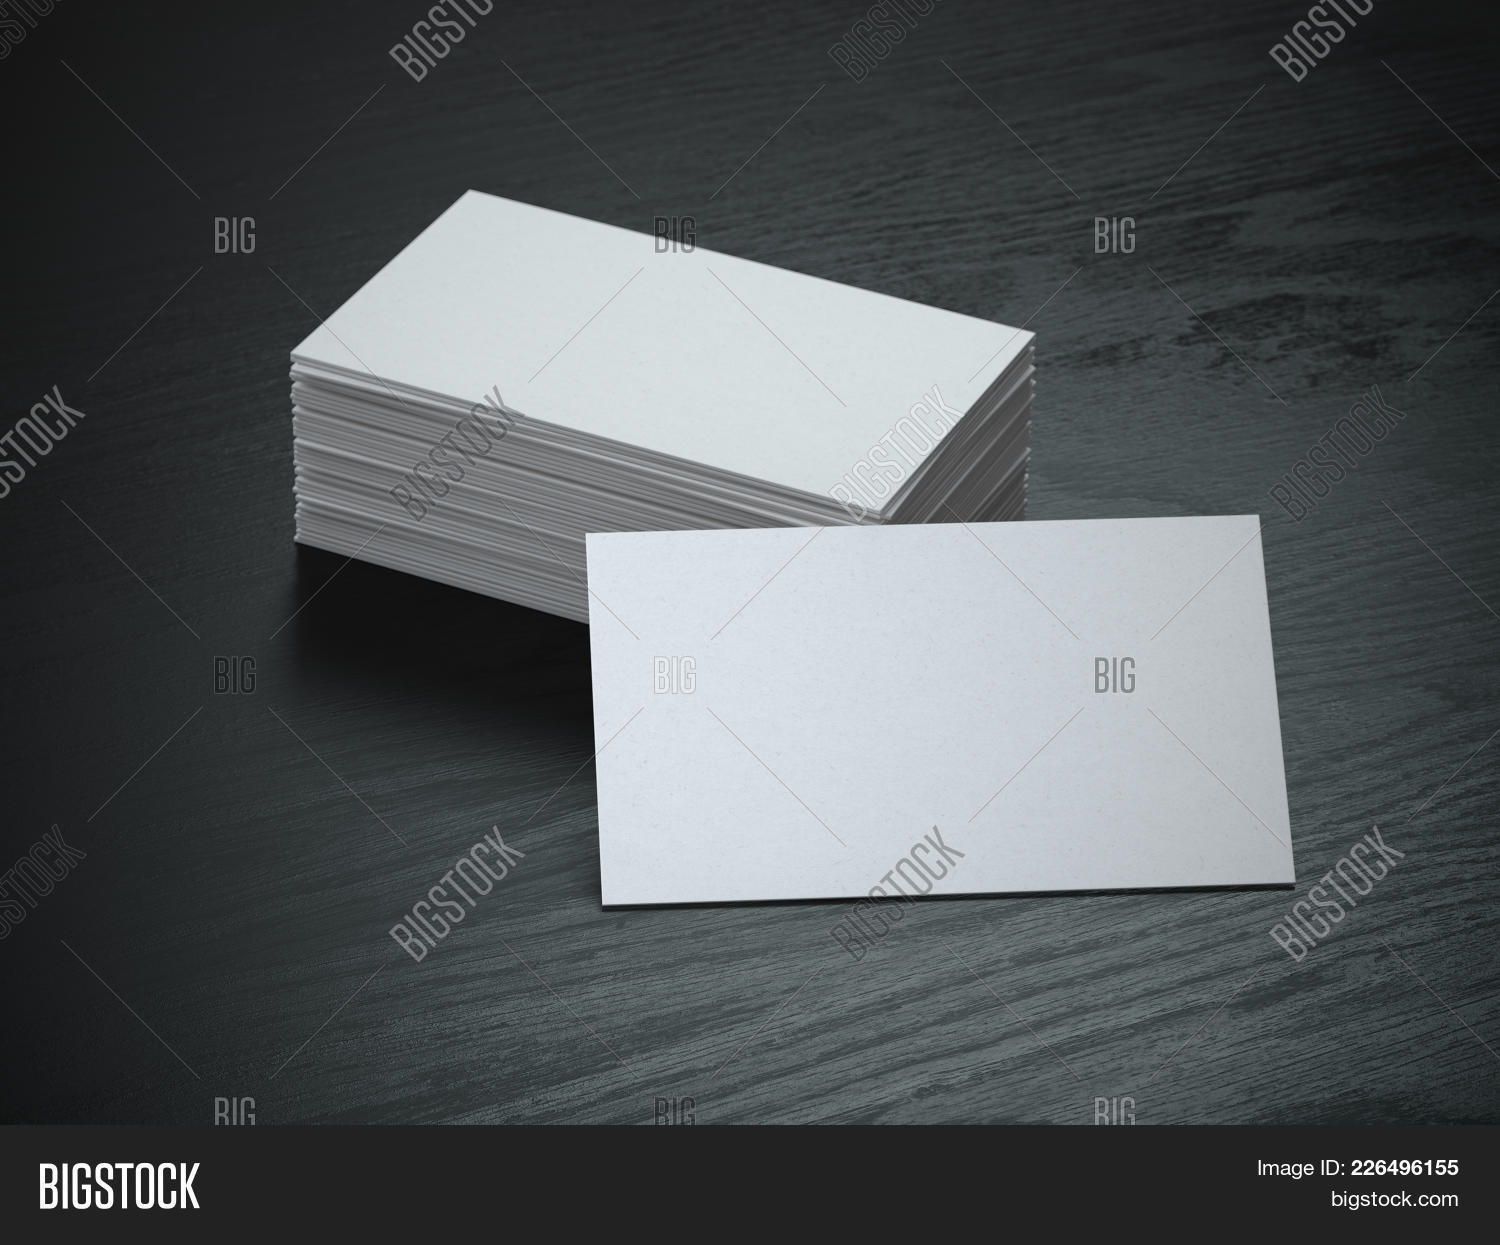 White blank business cards mockup image photo bigstock white blank business cards mockup on black wood table background 3d illustration reheart Choice Image